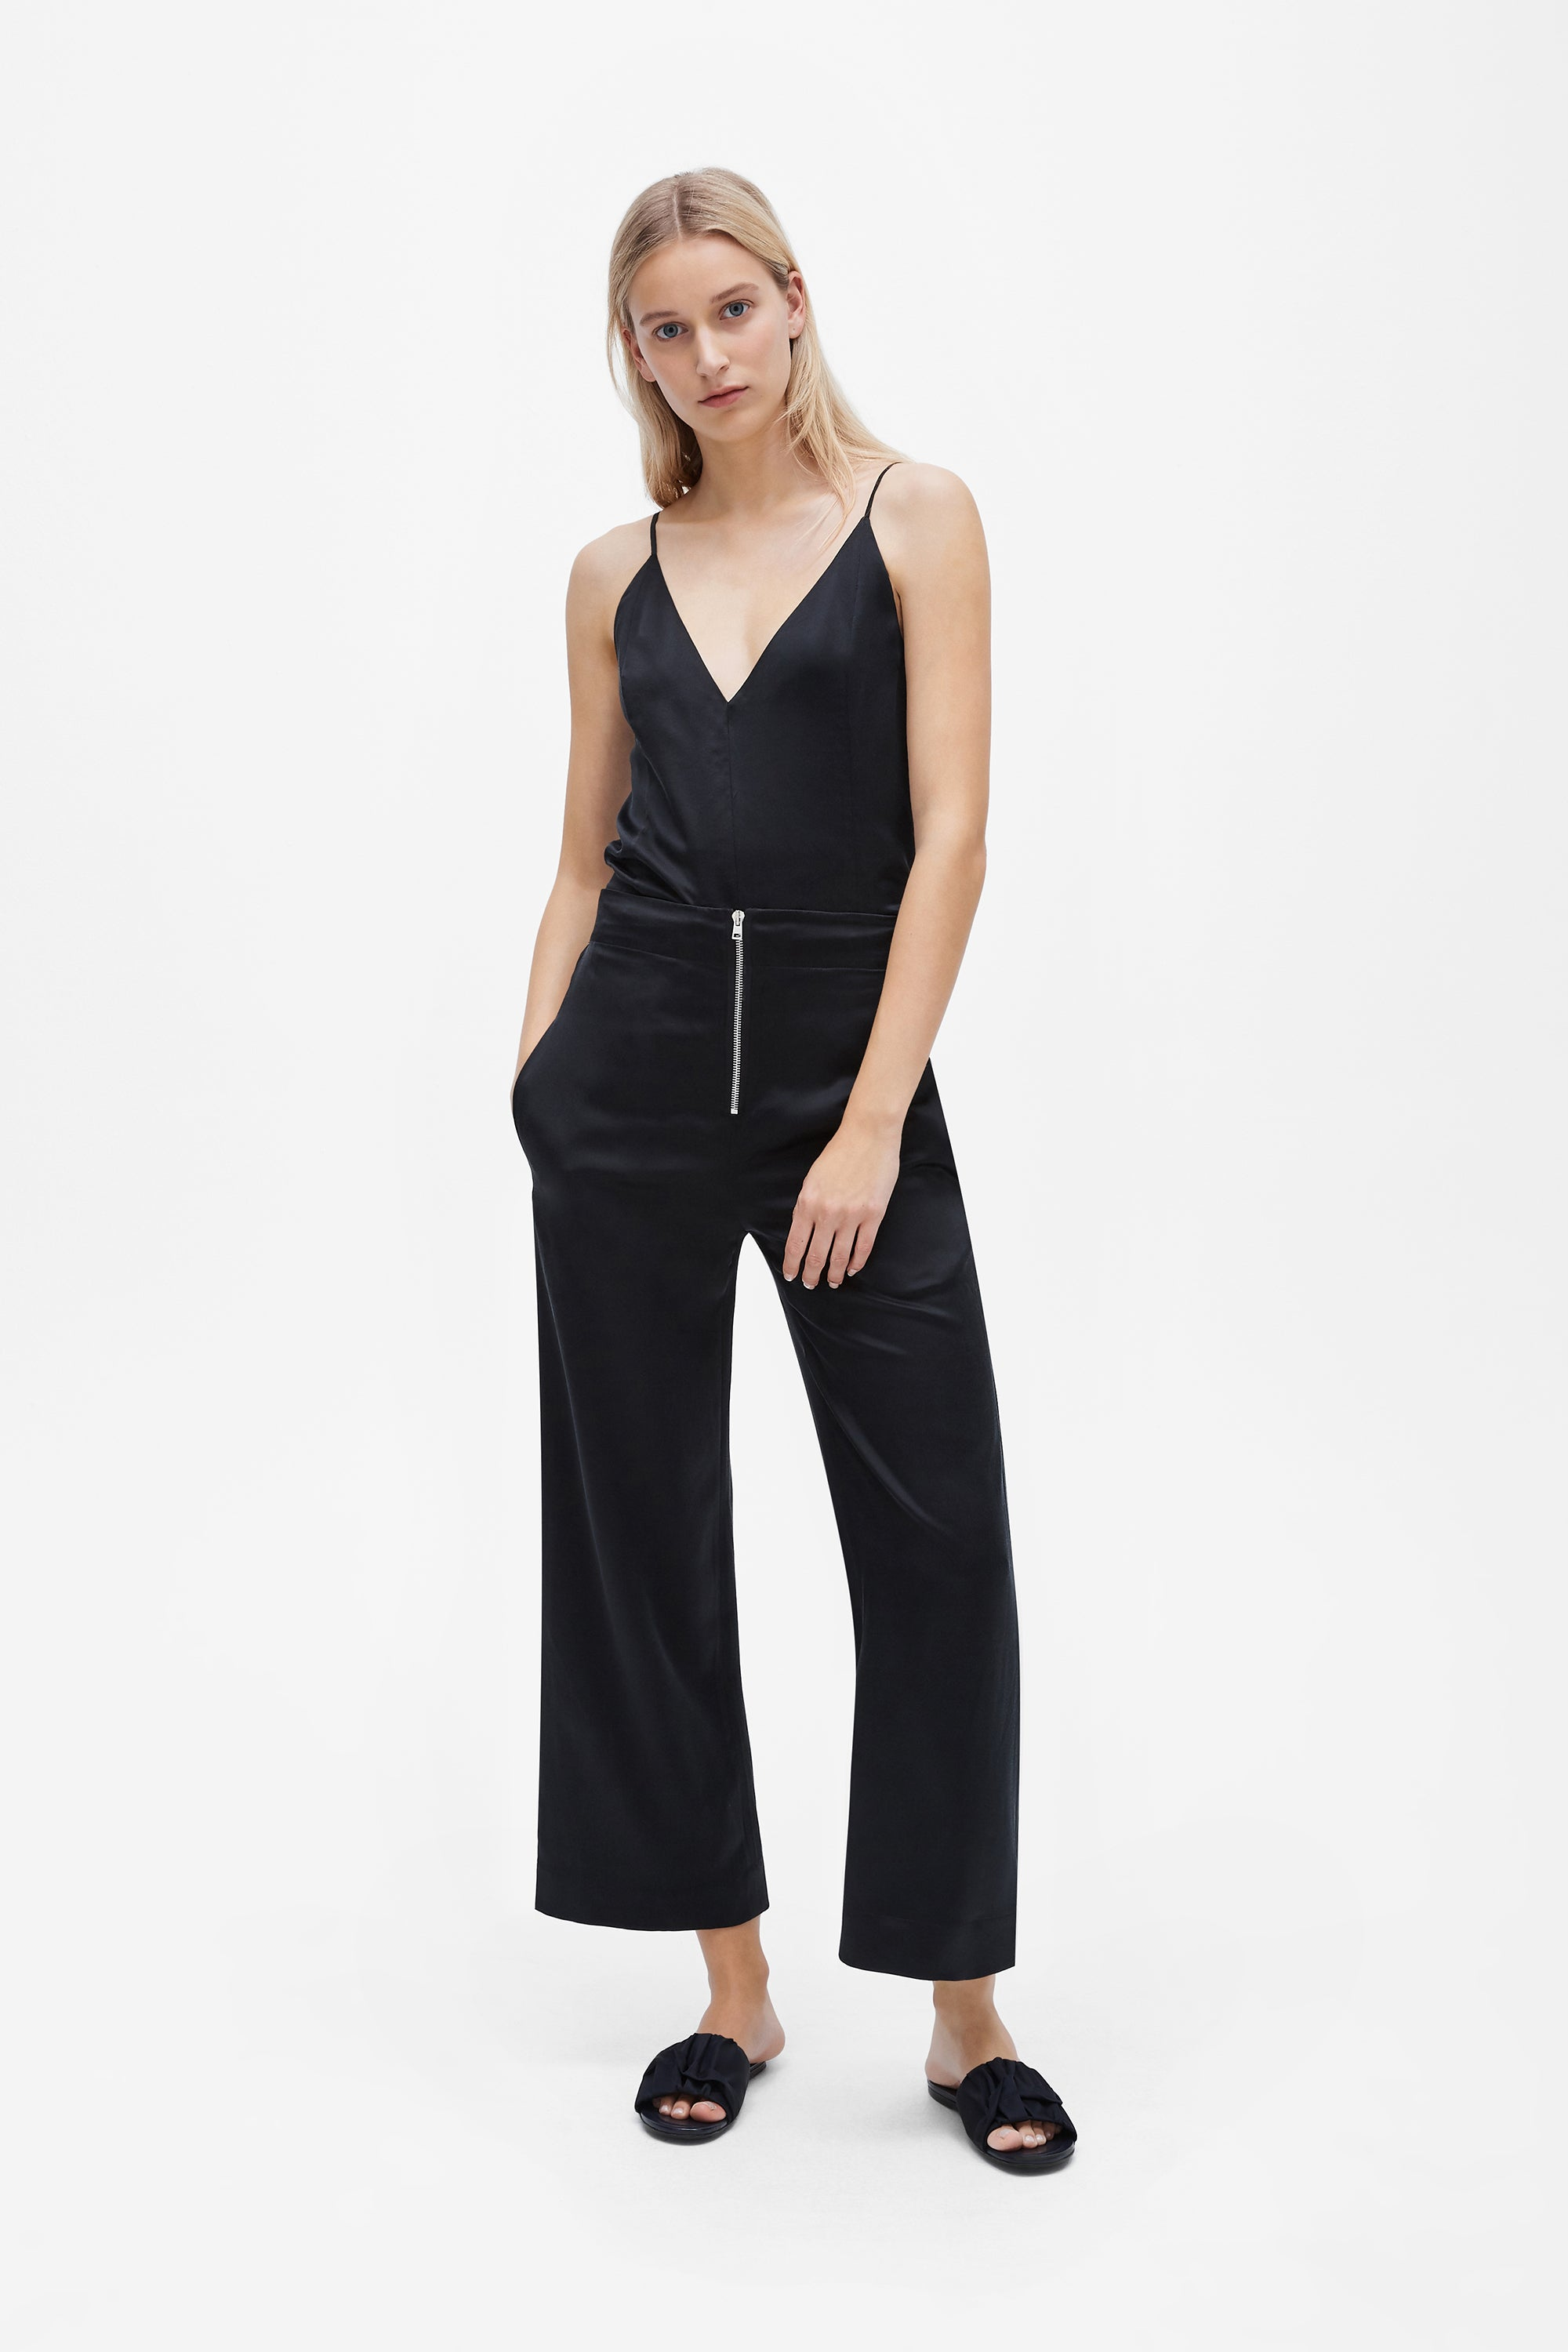 Exposed wide-leg pant - Sandwashed silk satin - Black - Resortwear trouser - Her Line